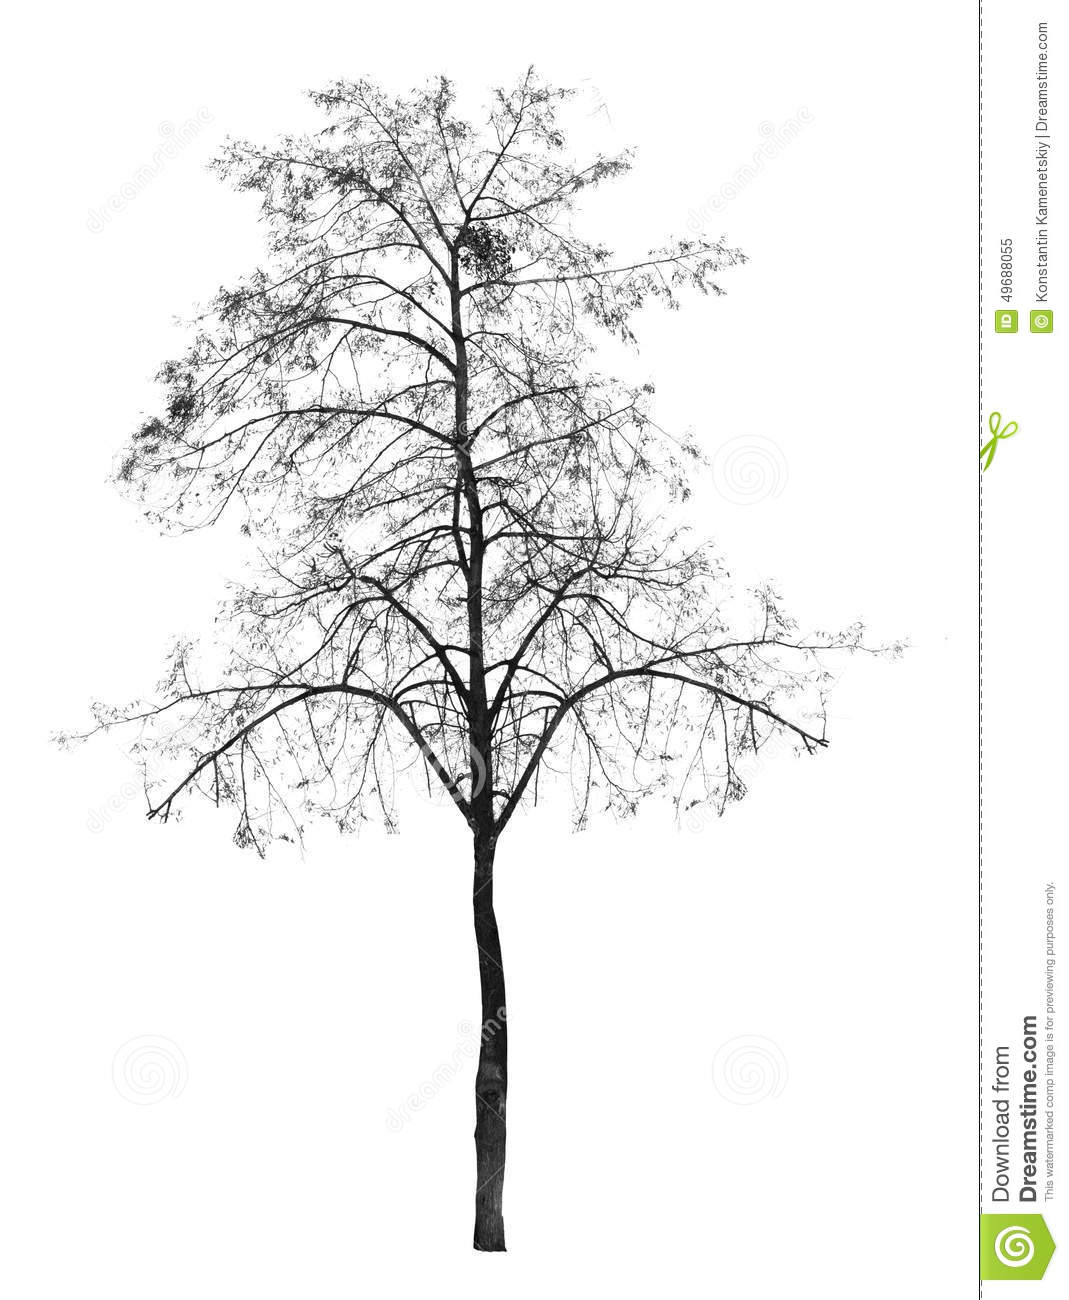 Bare tree without leaves deciduous tree stock image for Arboles de hoja caduca